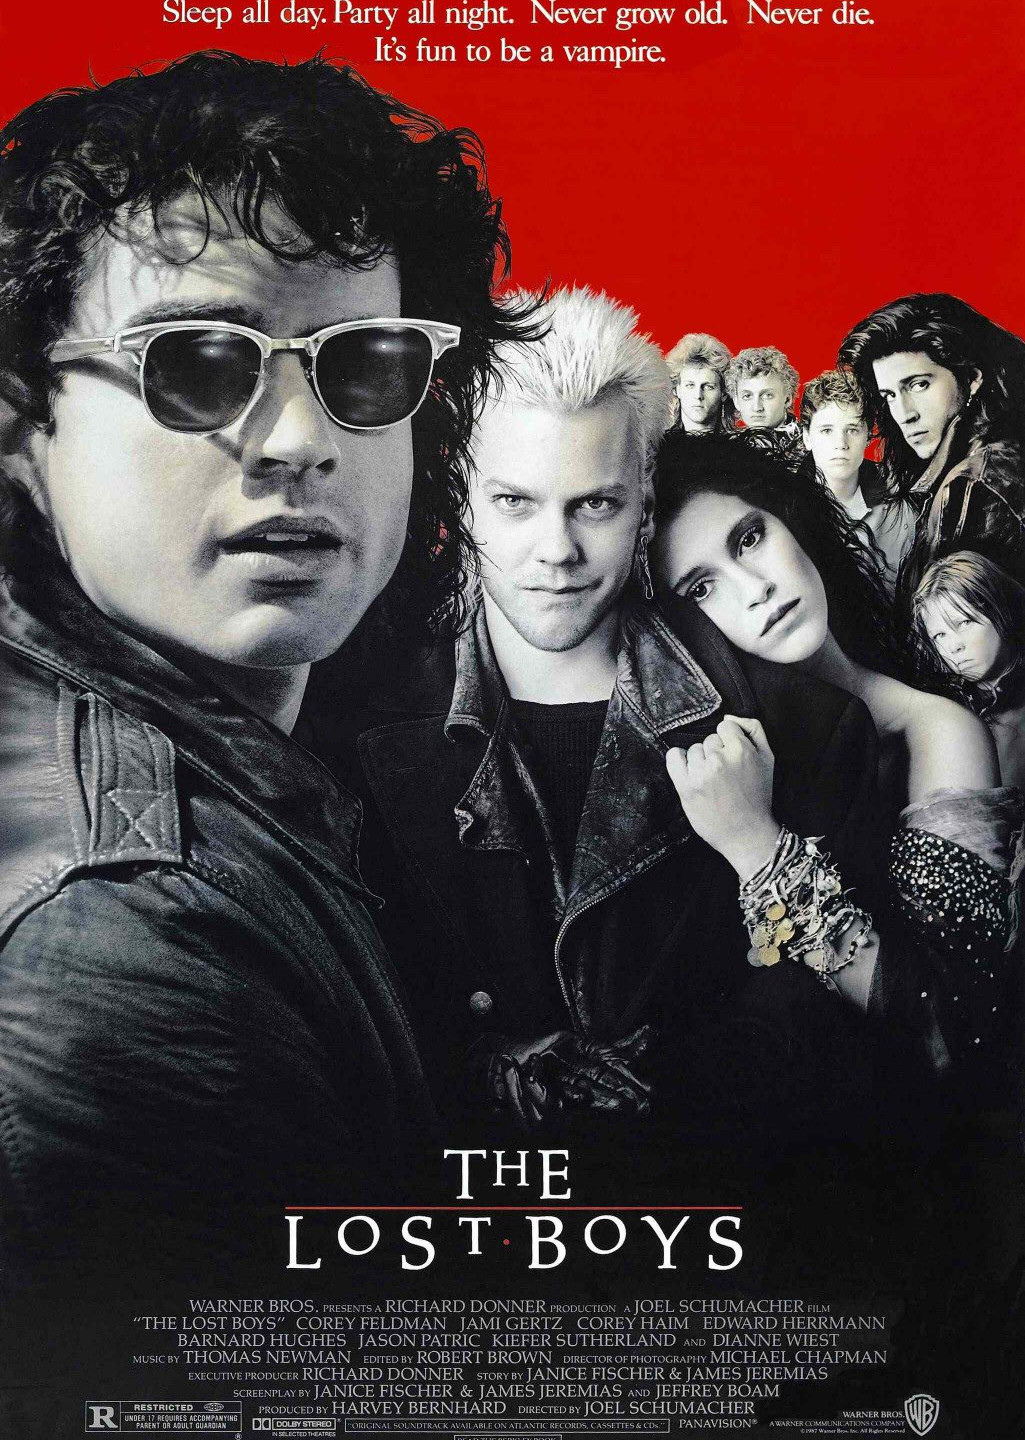 The THE LOST BOYS, Alvin showed he was equally gifted with using photography for making an artful poster design.